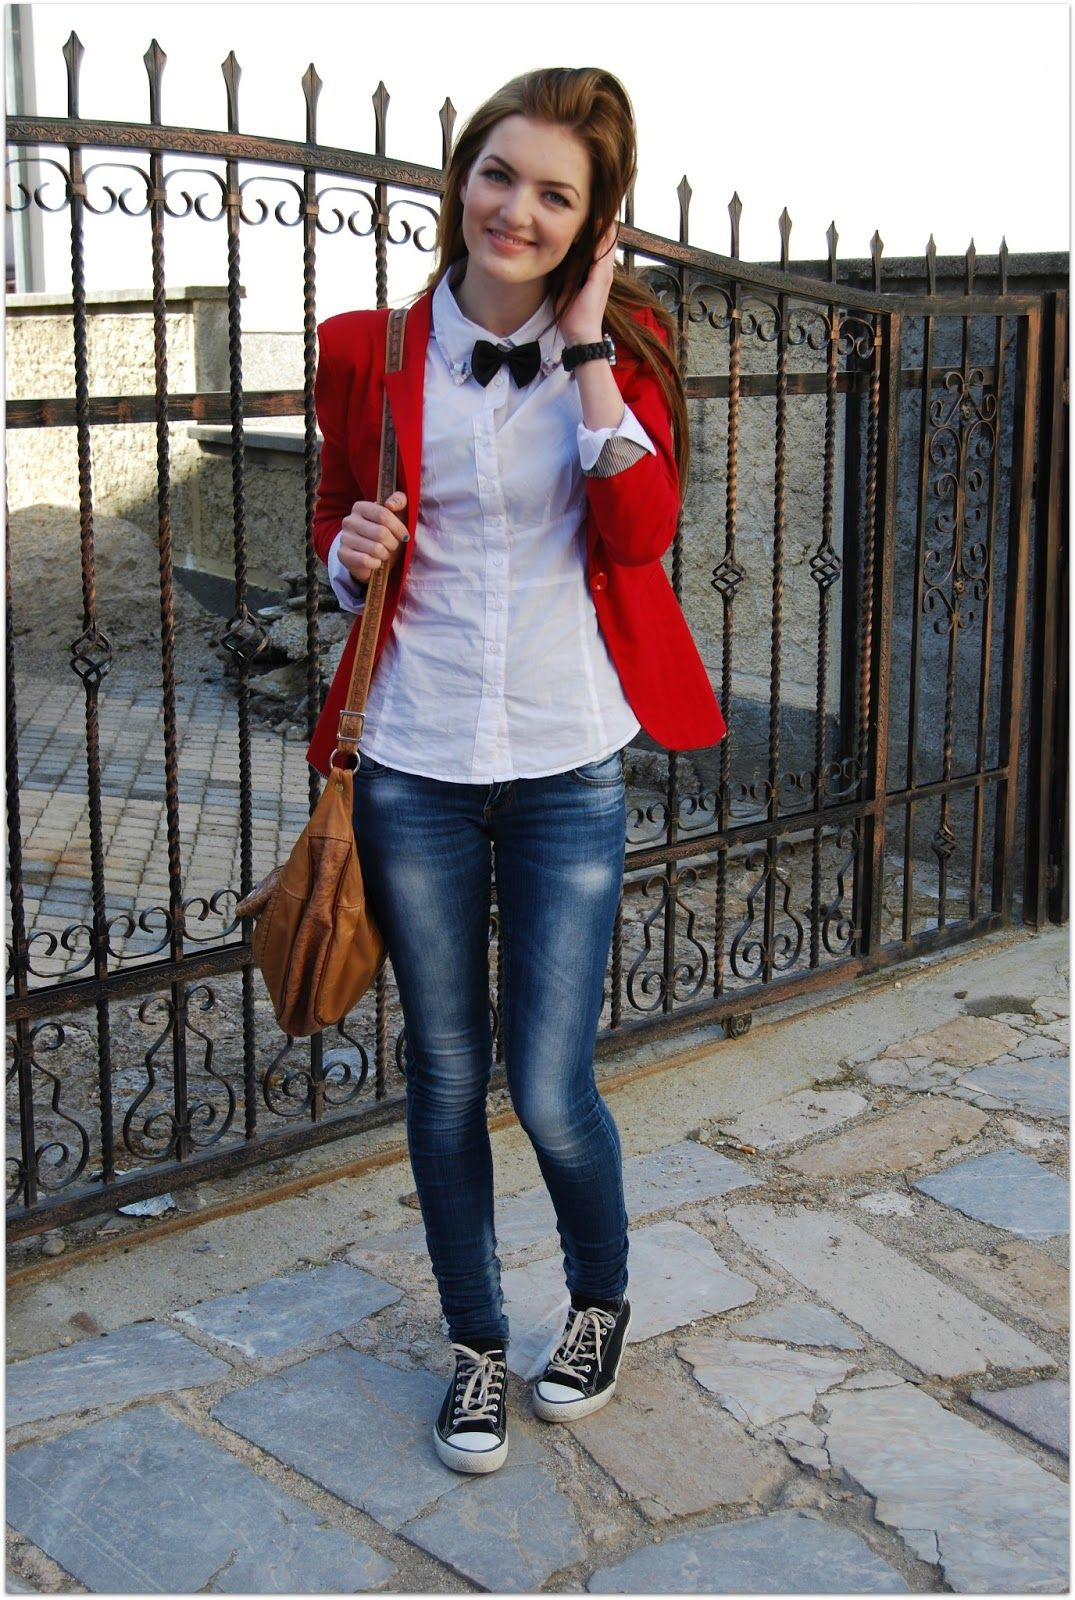 This is cute | Clothes | Pinterest | Clothes, Tomboy and ...